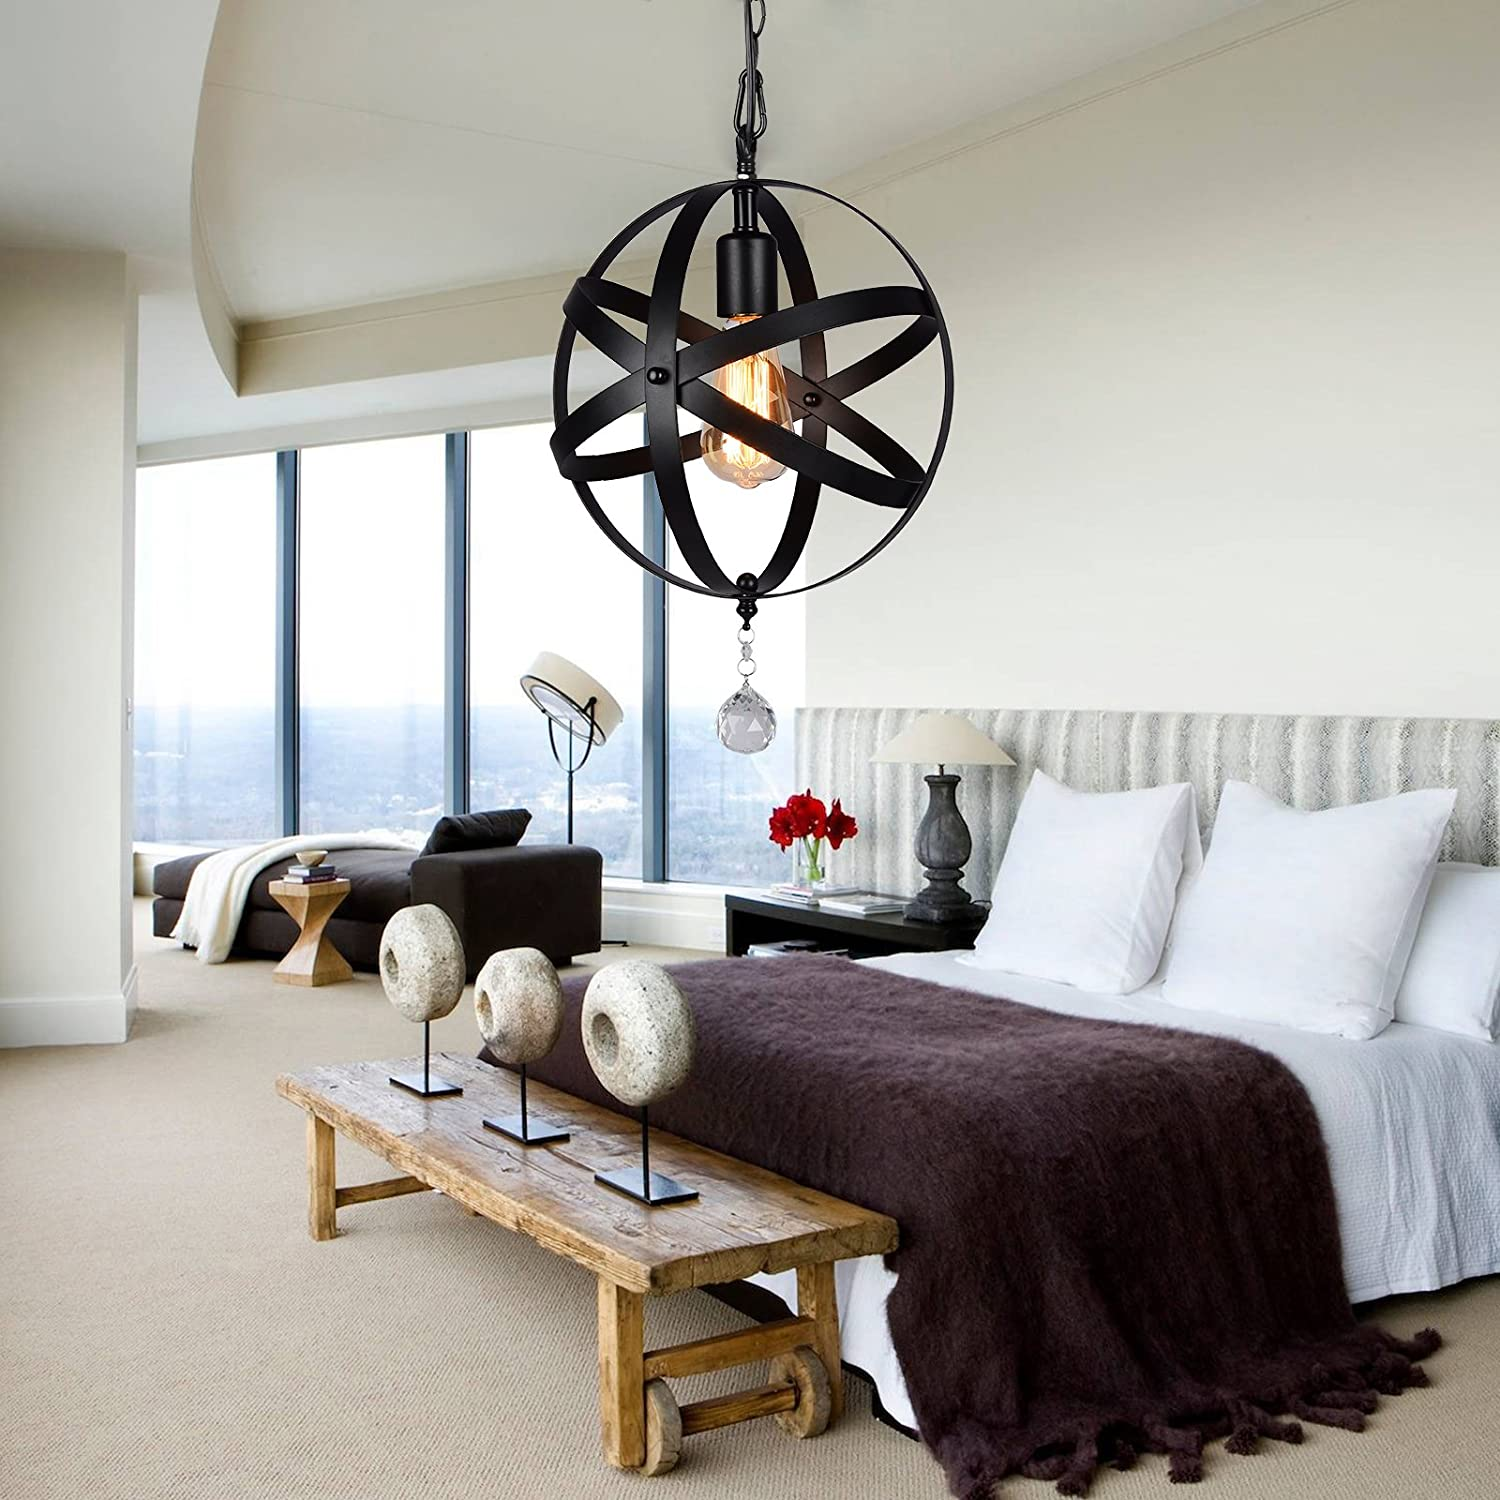 Creative Co-op Glass and Mango Wood Ceiling Pendant Light, 11 Round by 15 Height